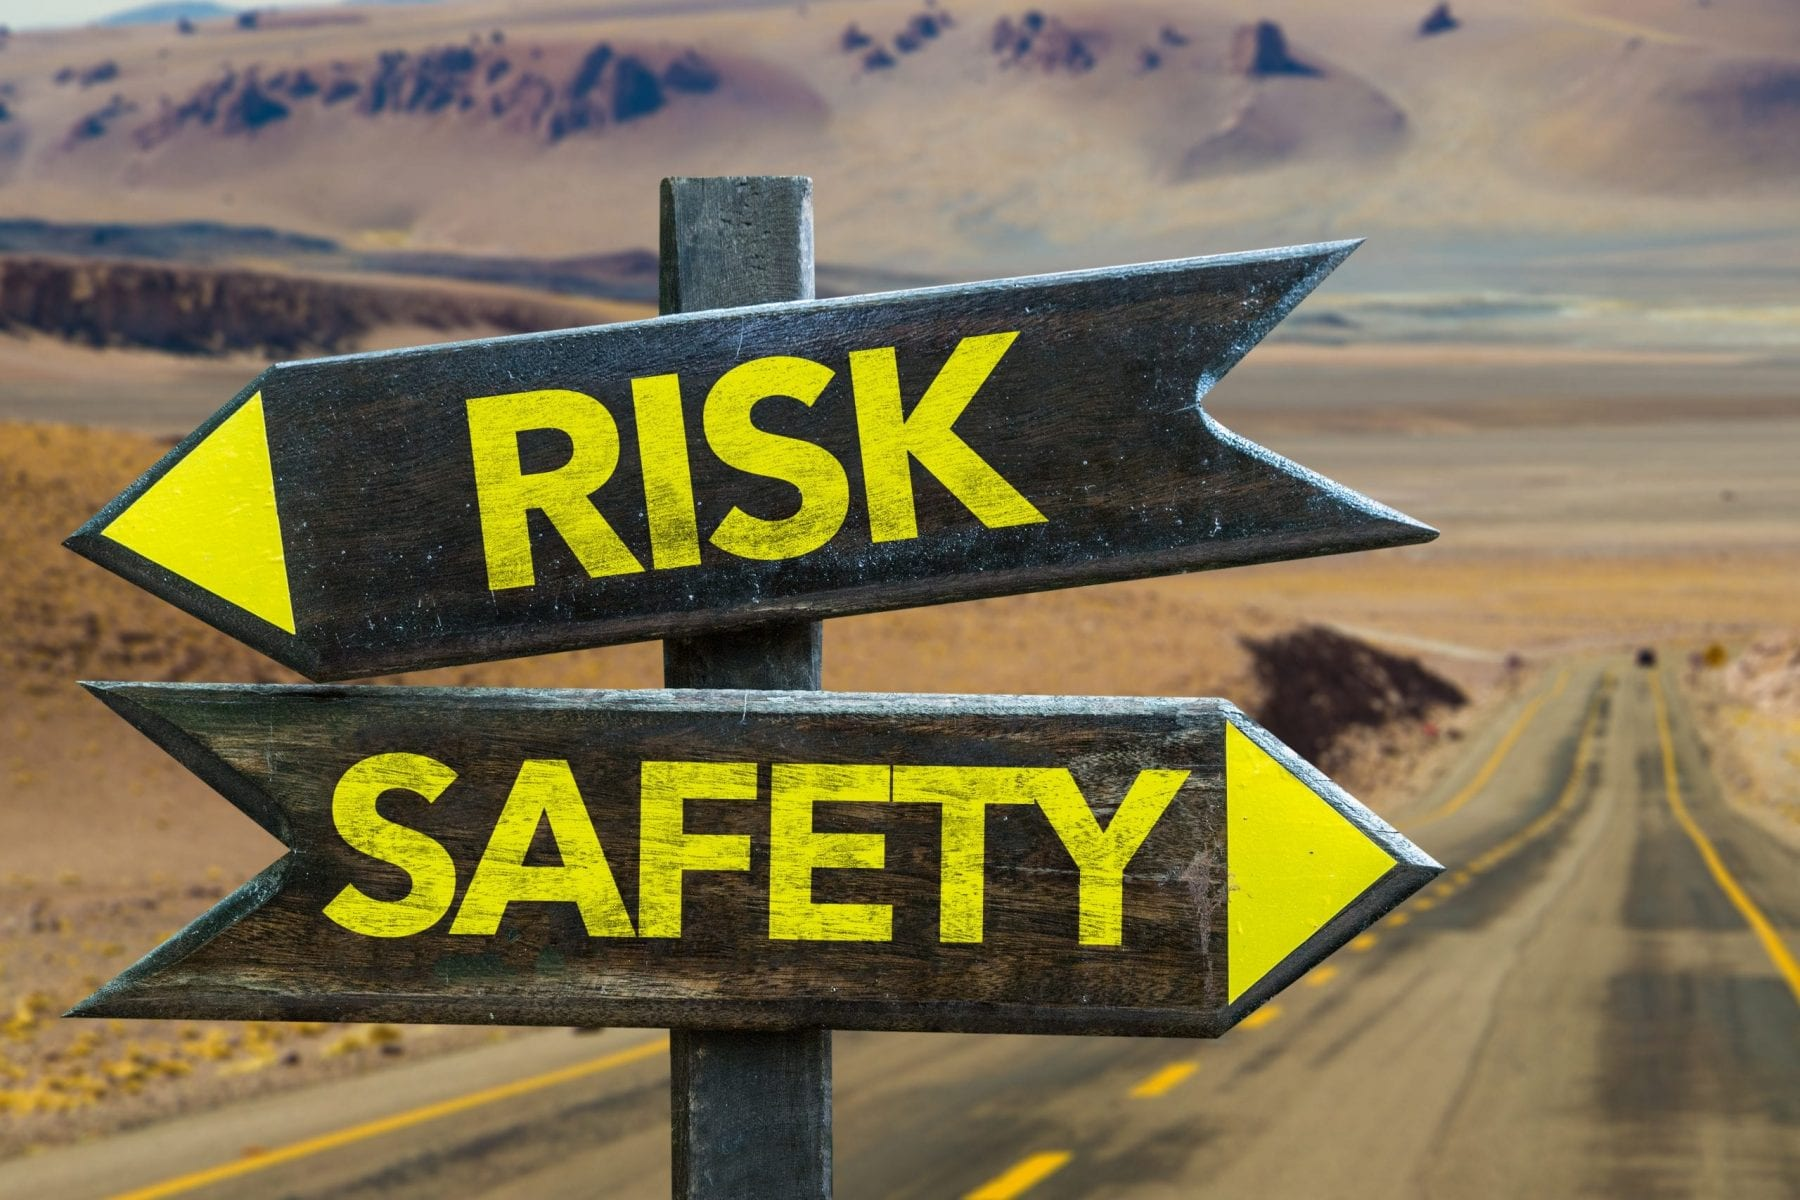 Risk and Safety signs